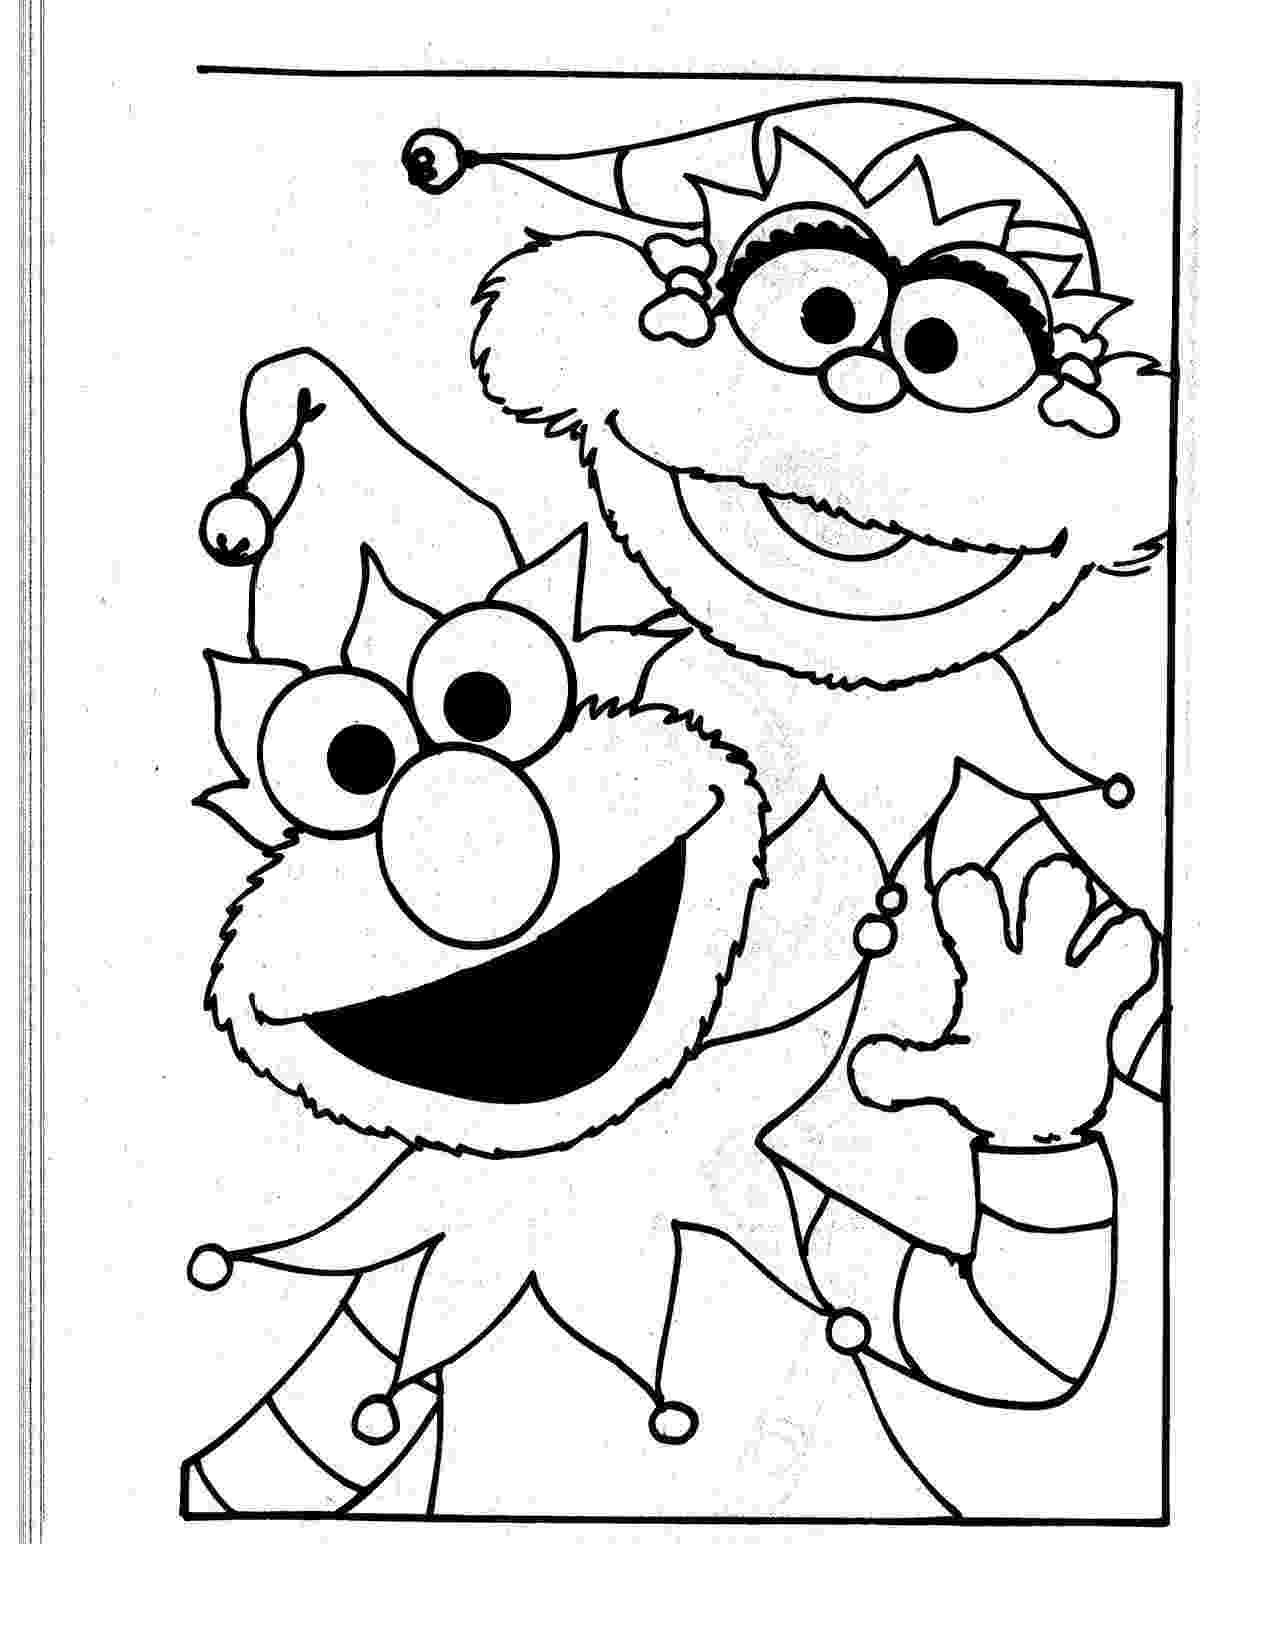 elmo coloring free printable elmo coloring pages for kids elmo coloring 1 1